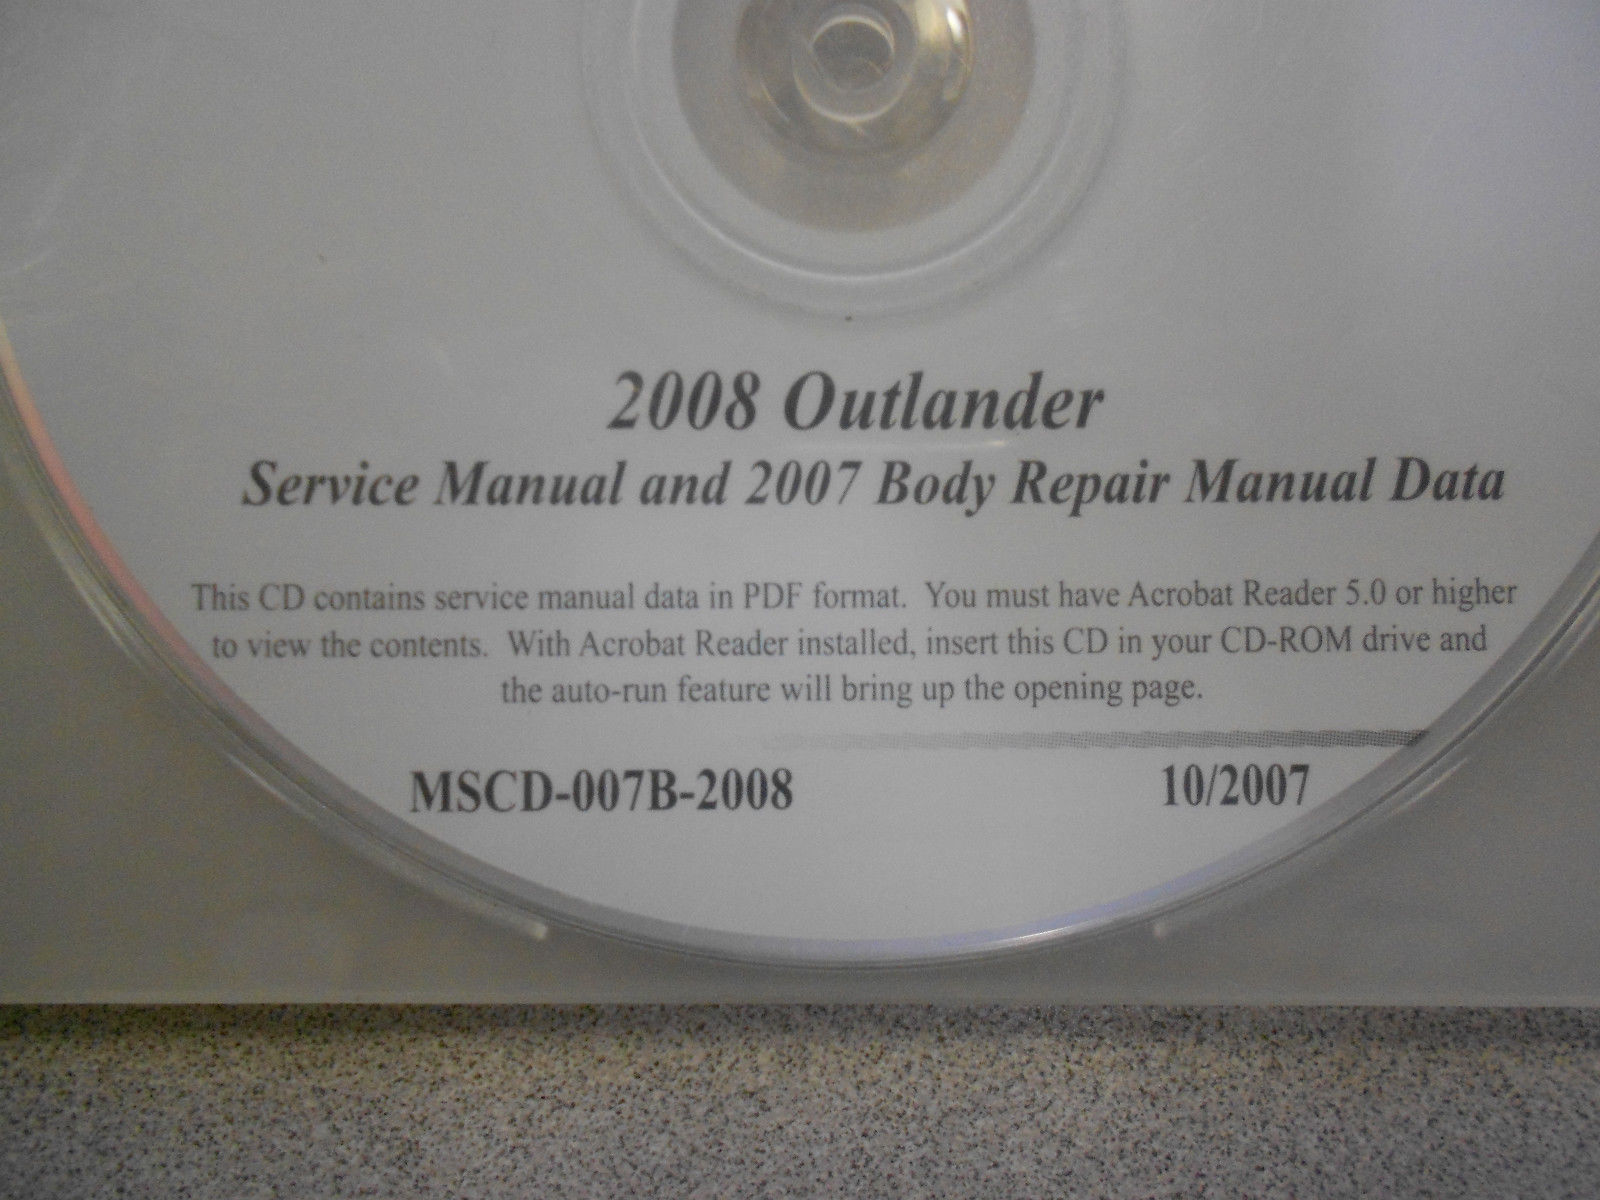 2008 2007 MITSUBISHI OUTLANDER Service Repair Manual CD BRAND NEW image 2